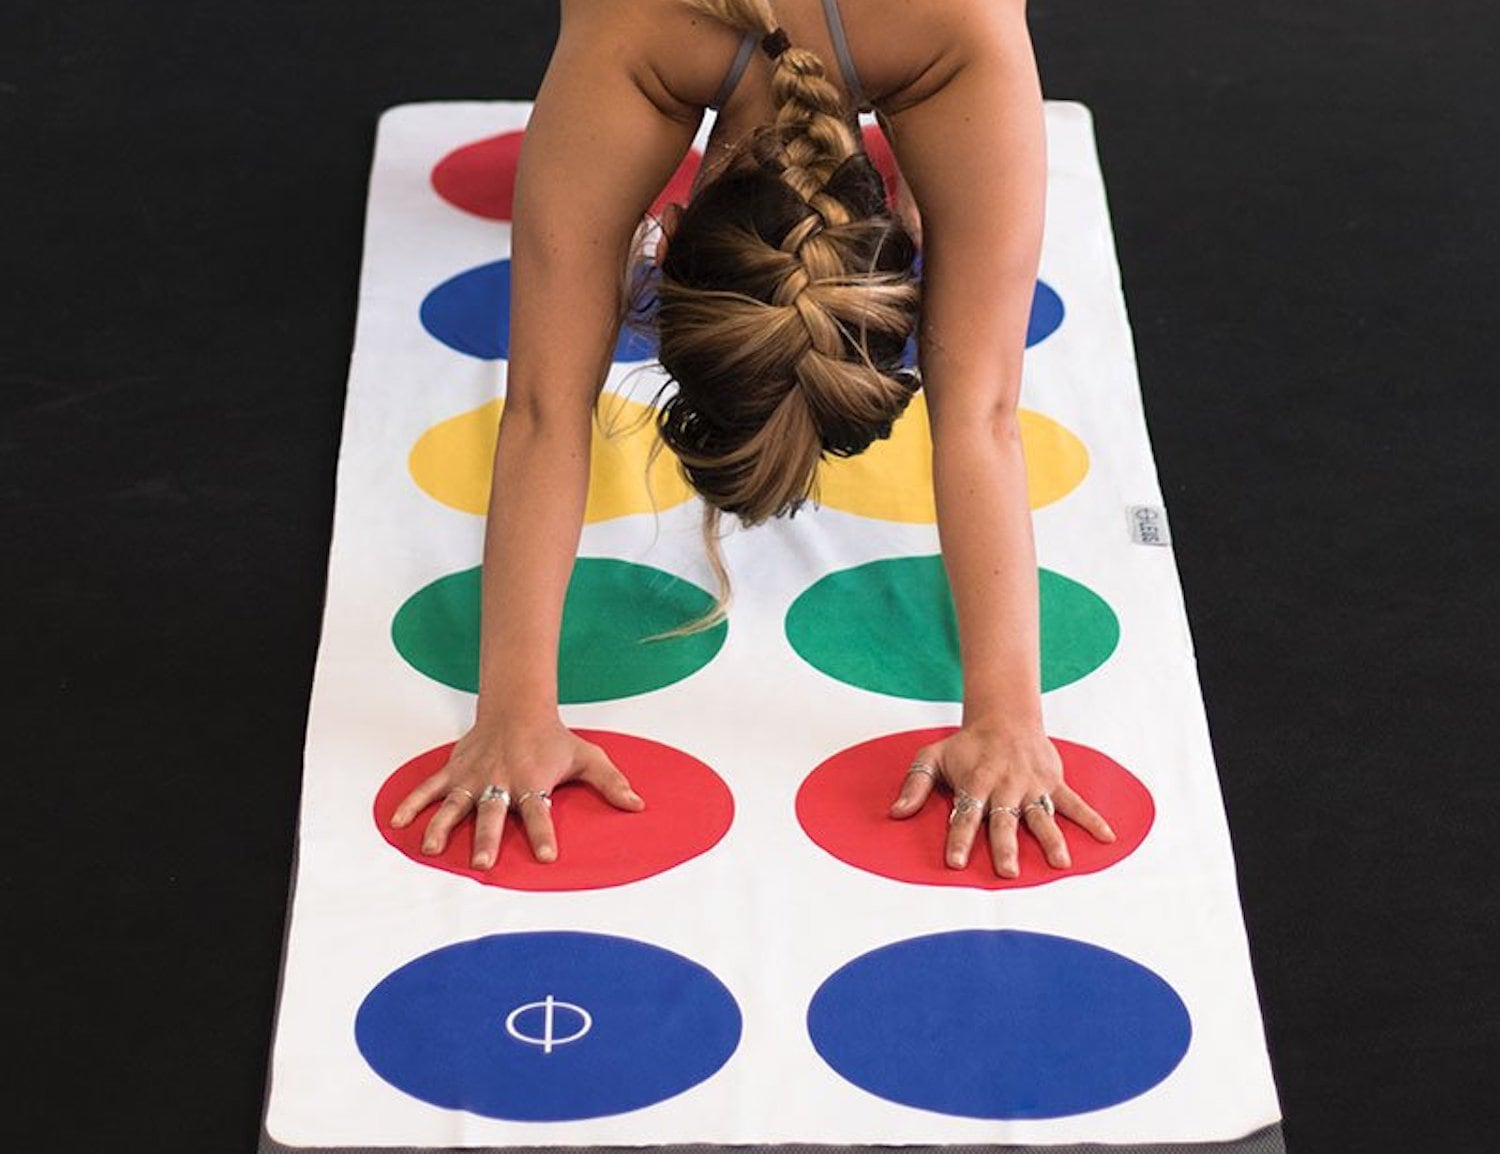 Leus Twister-Inspired Yoga Mat Towel is here to gamify your workout